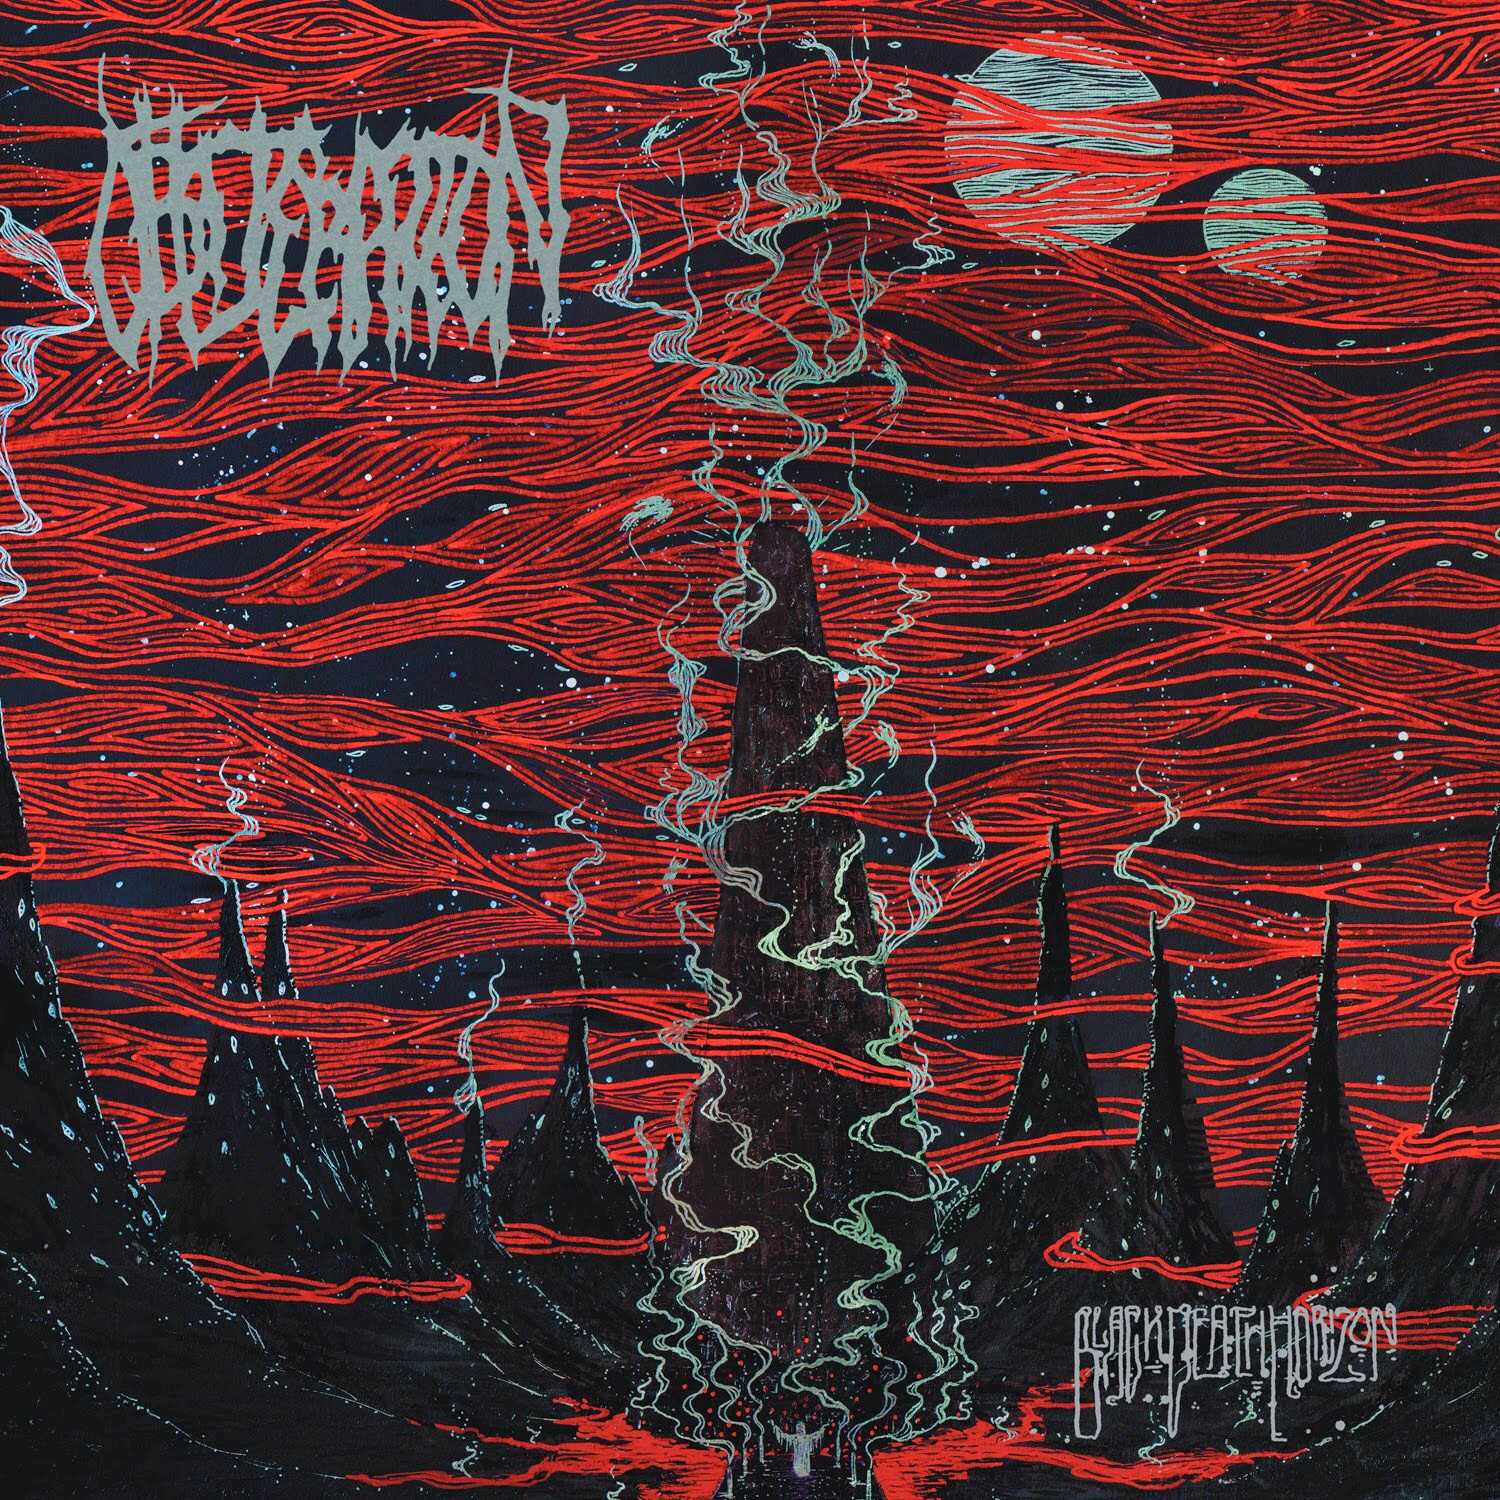 Obliteration - Black Death Horizon